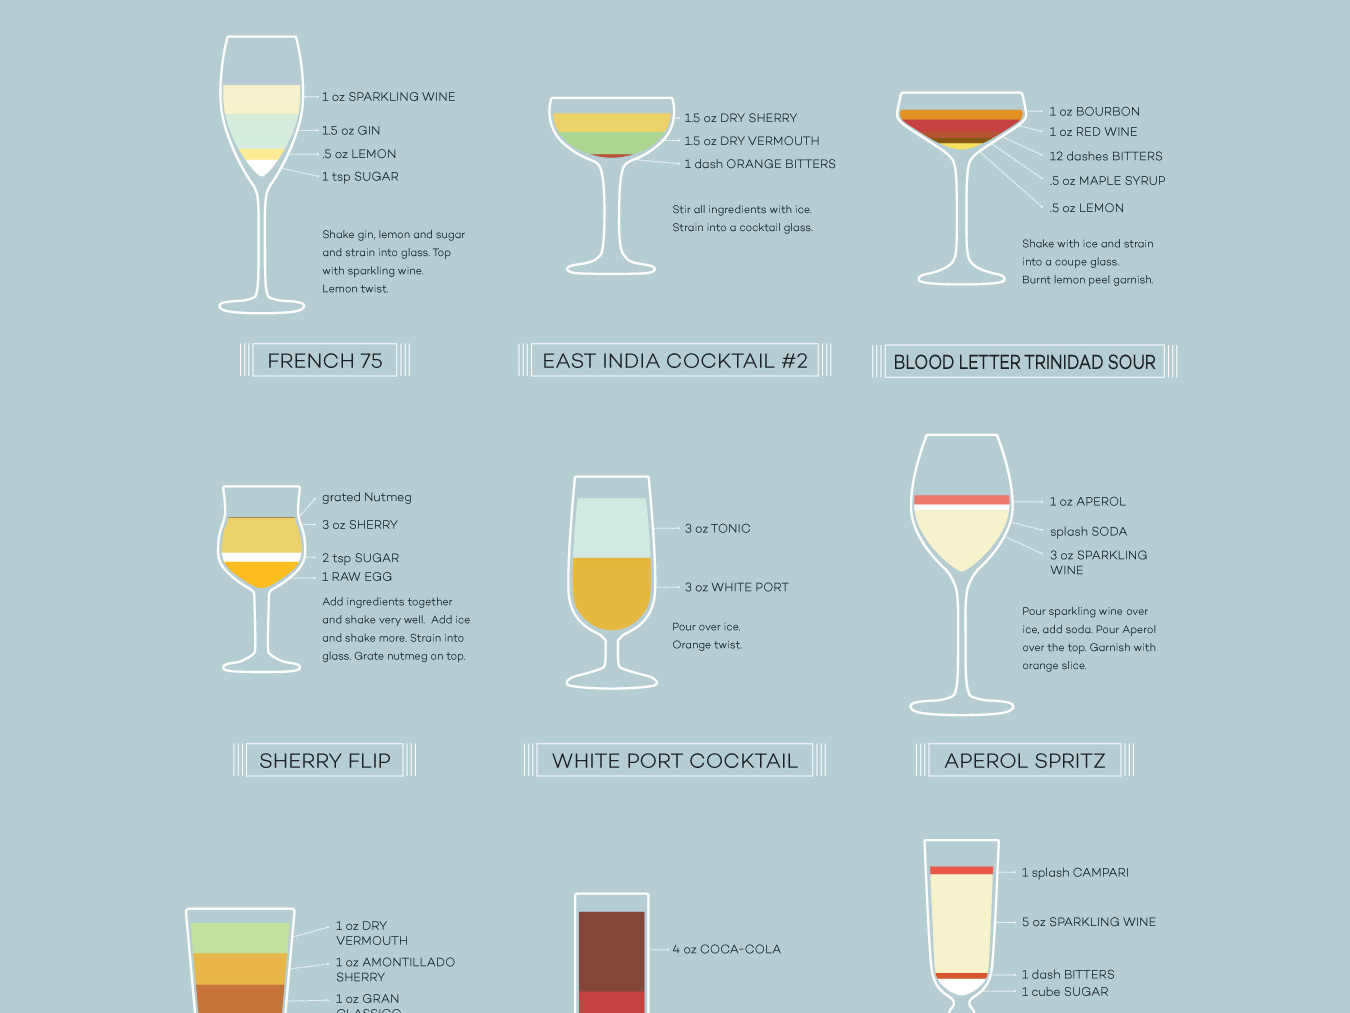 wine-cocktails-infographic-wine-folly-excerpt